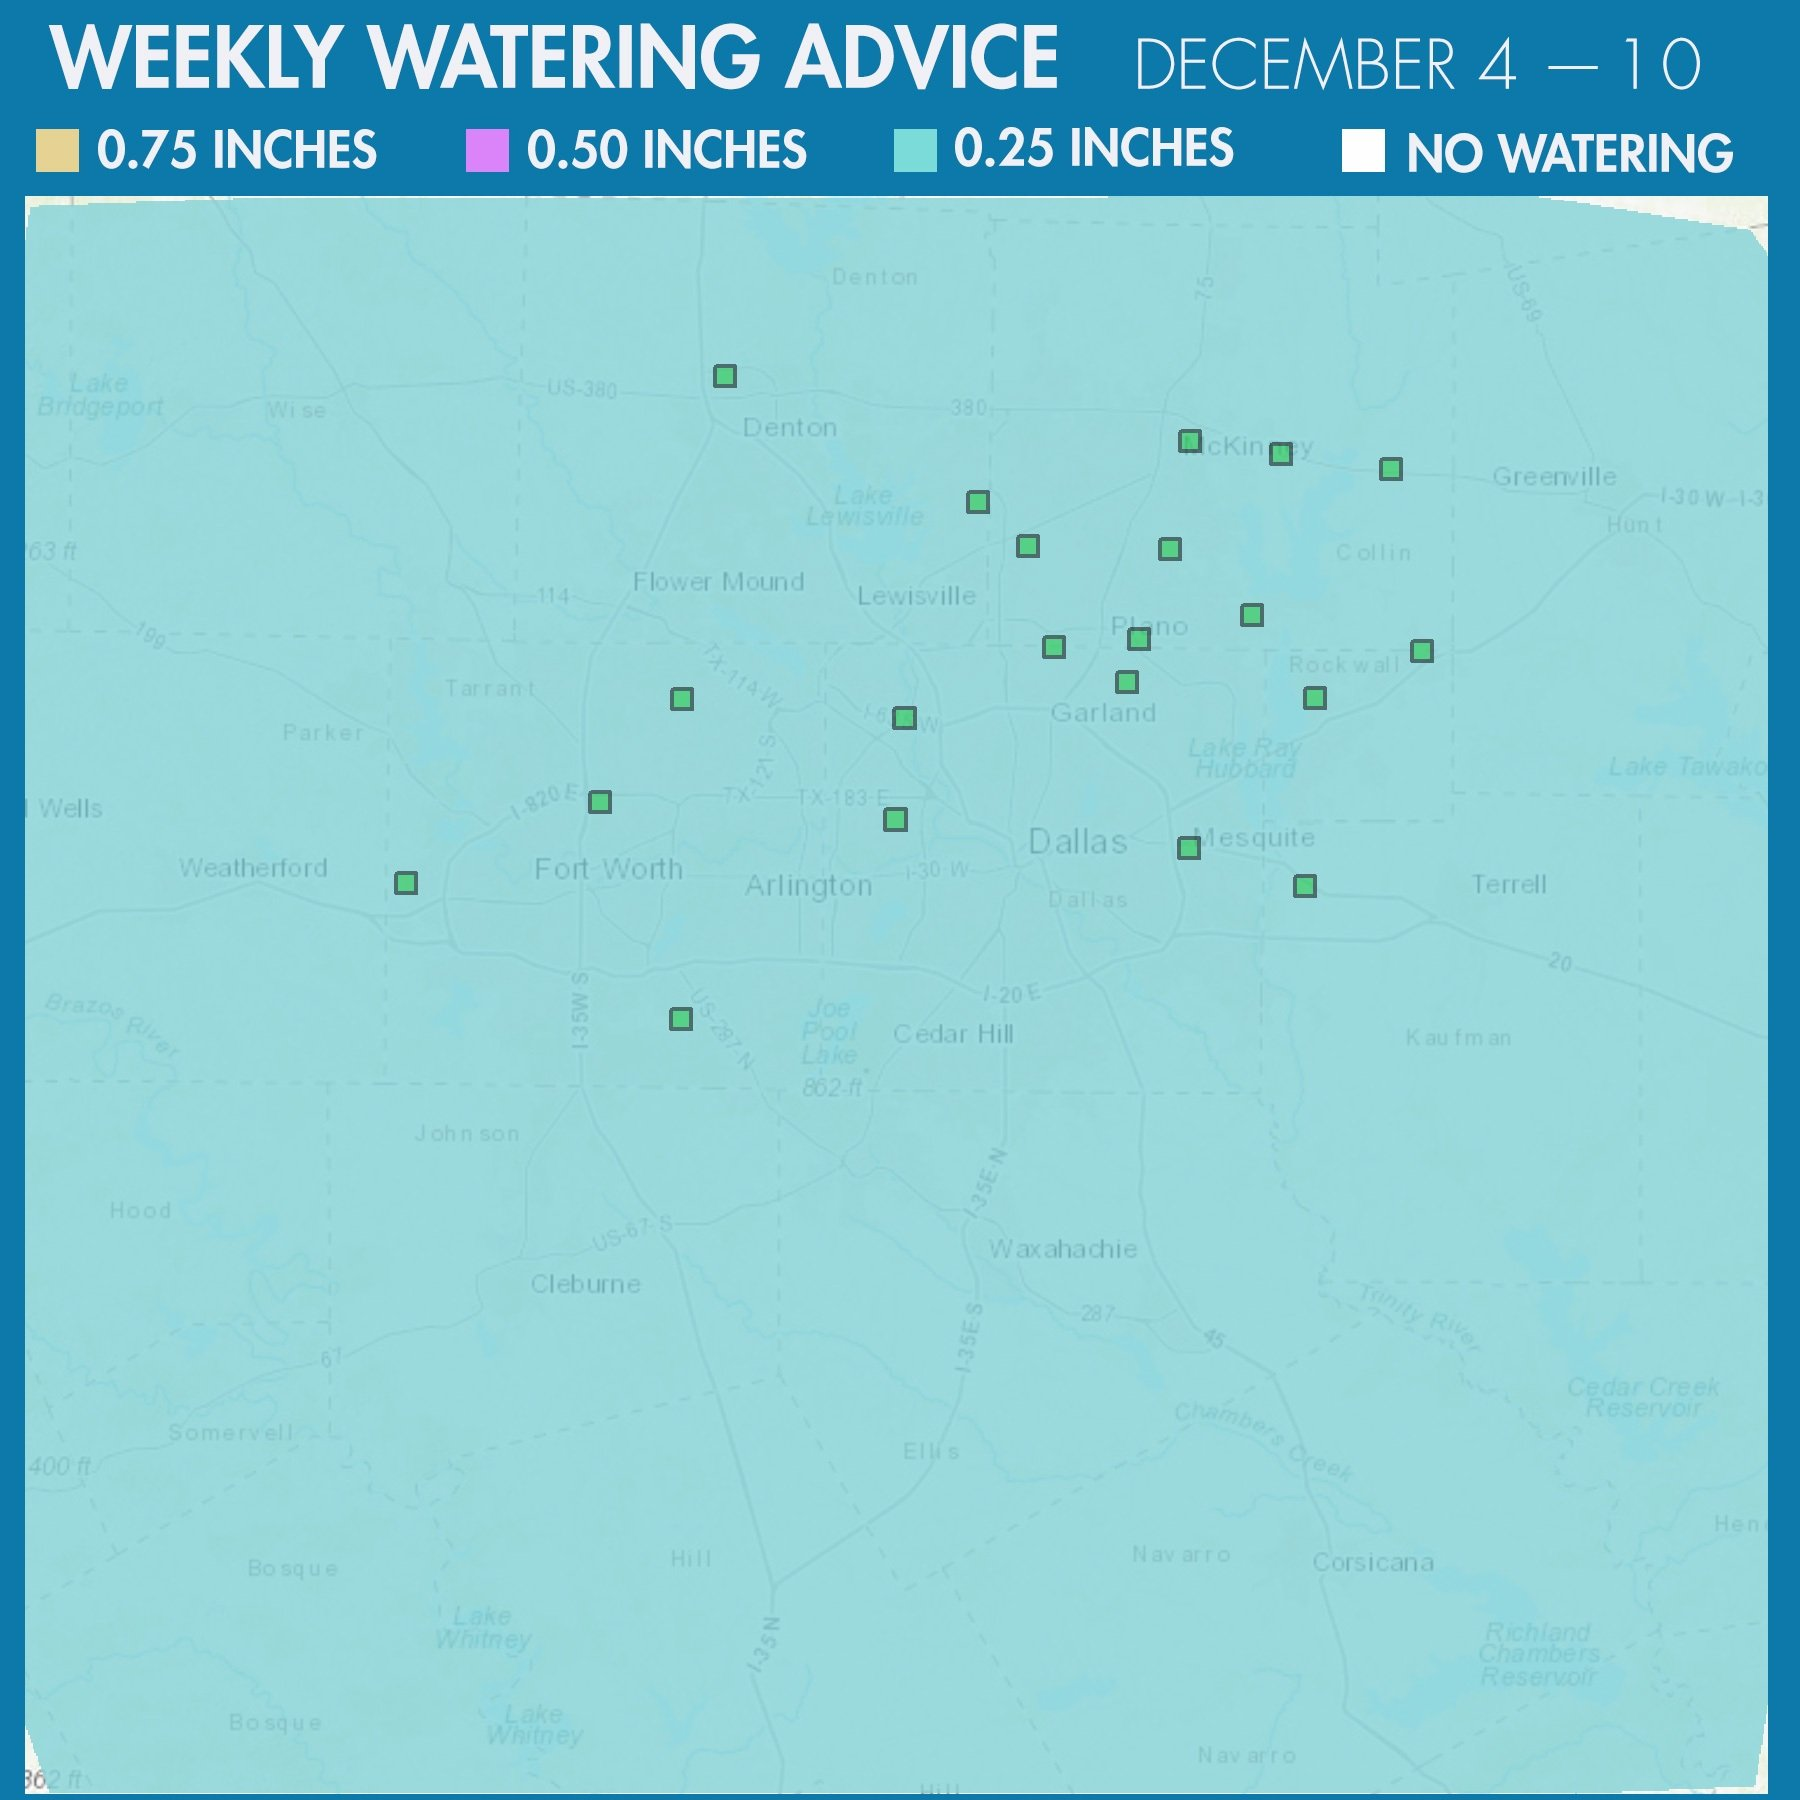 20171204 Weekly Water Advice